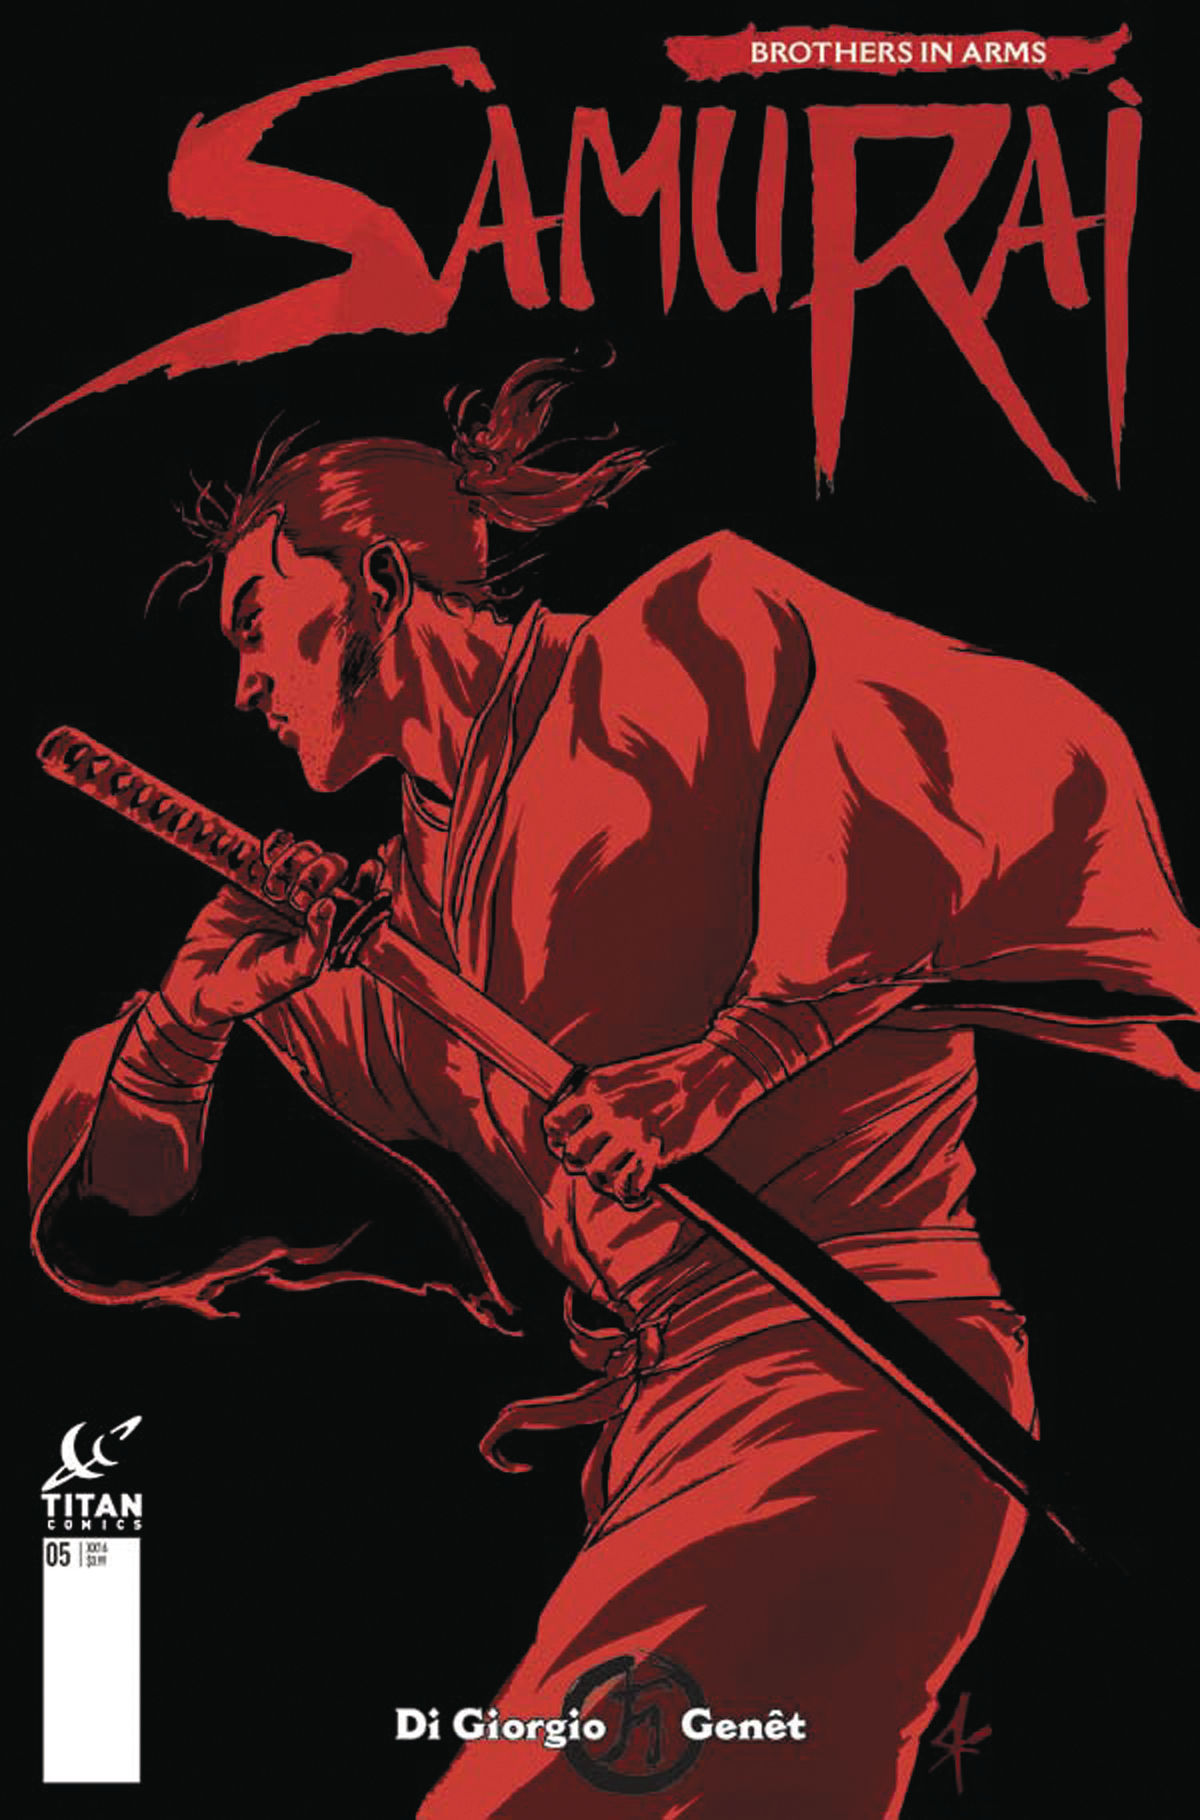 SAMURAI BROTHERS IN ARMS #1 (OF 6) CVR E KURTH (MR)